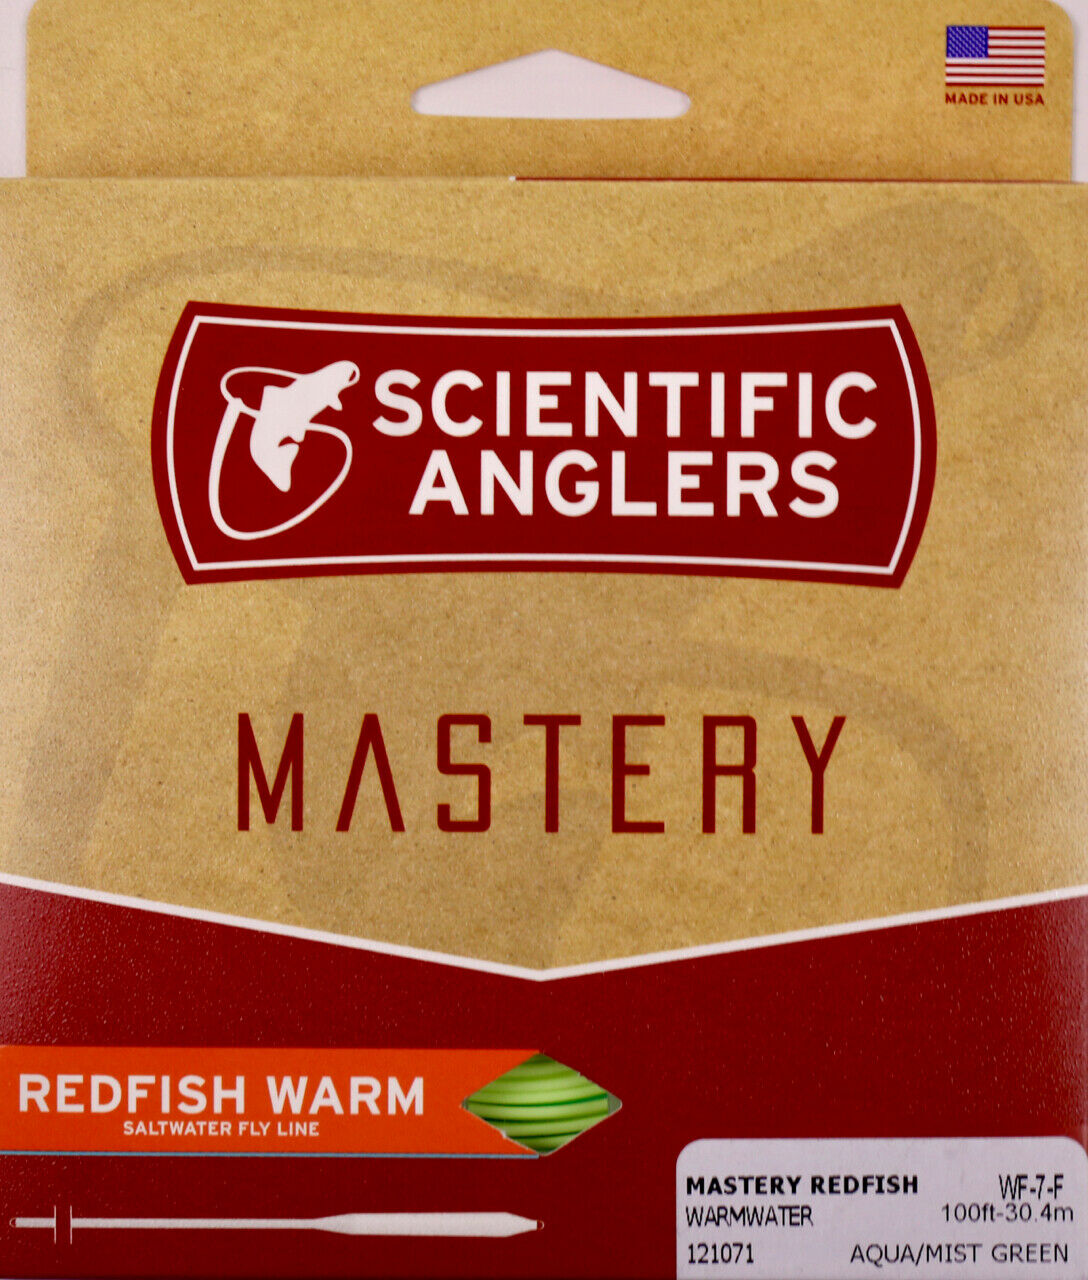 Scientific Anglers Mastery rossofish Cold Fly Line WF10F FREE FAST SHIP 126120